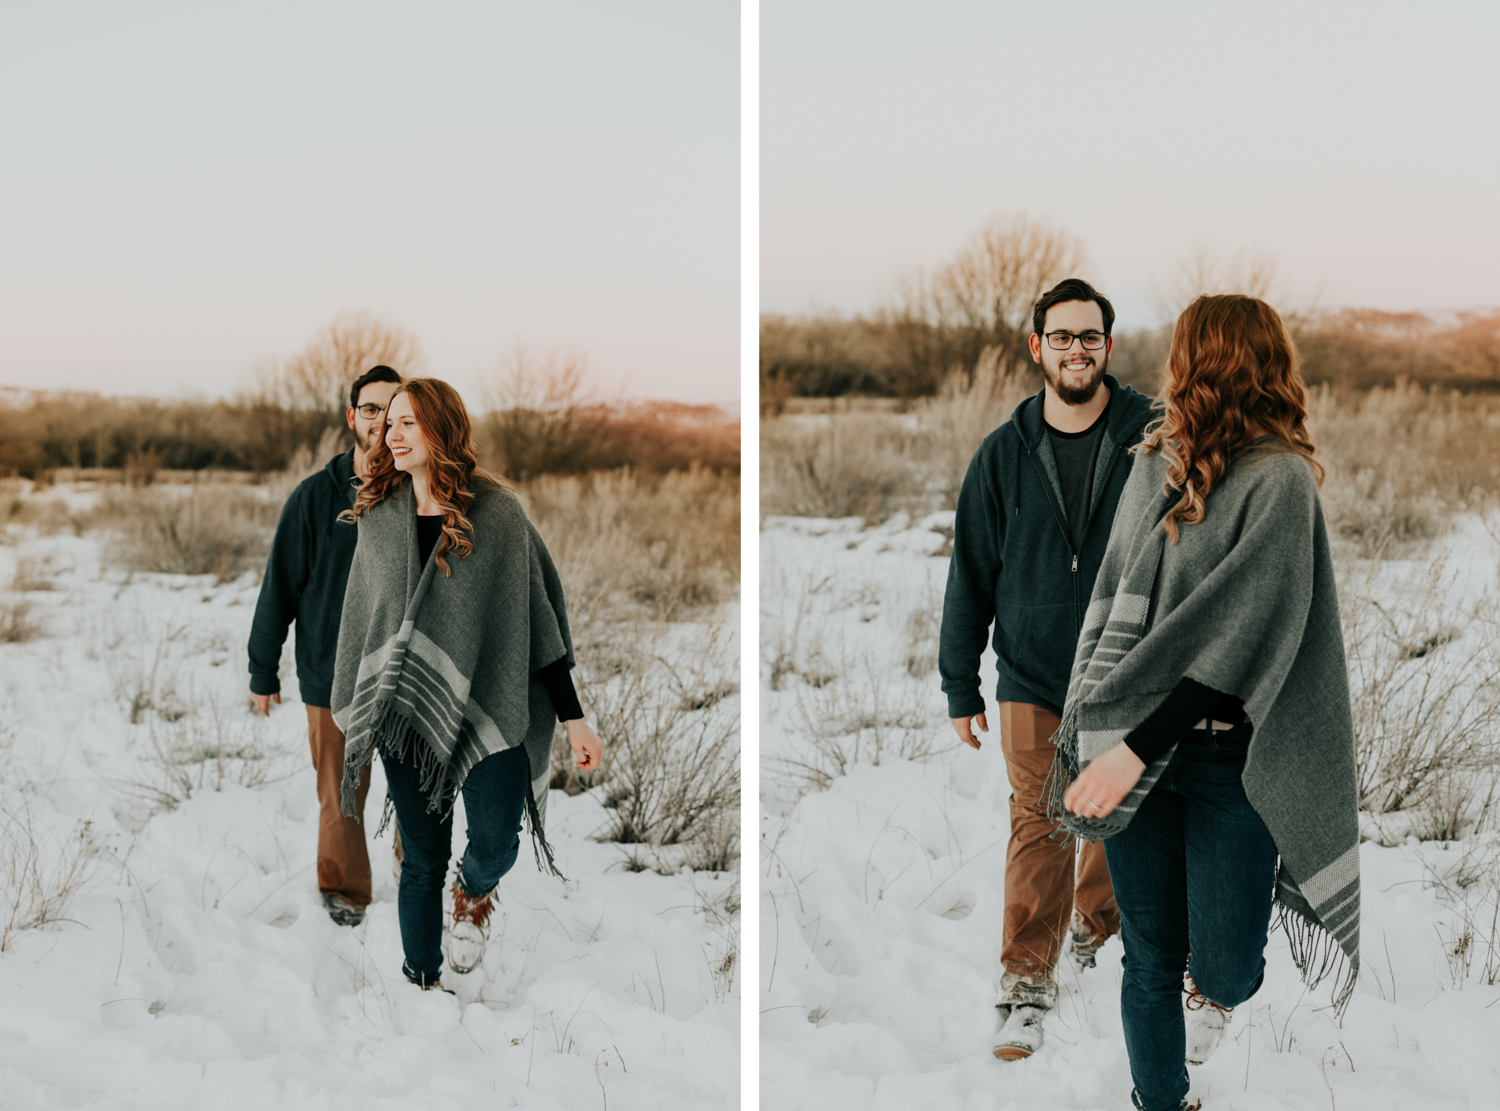 lethbridge-photography-love-and-be-loved-photographer-dan-tynnea-engagement-picture-image-photo-4.jpg